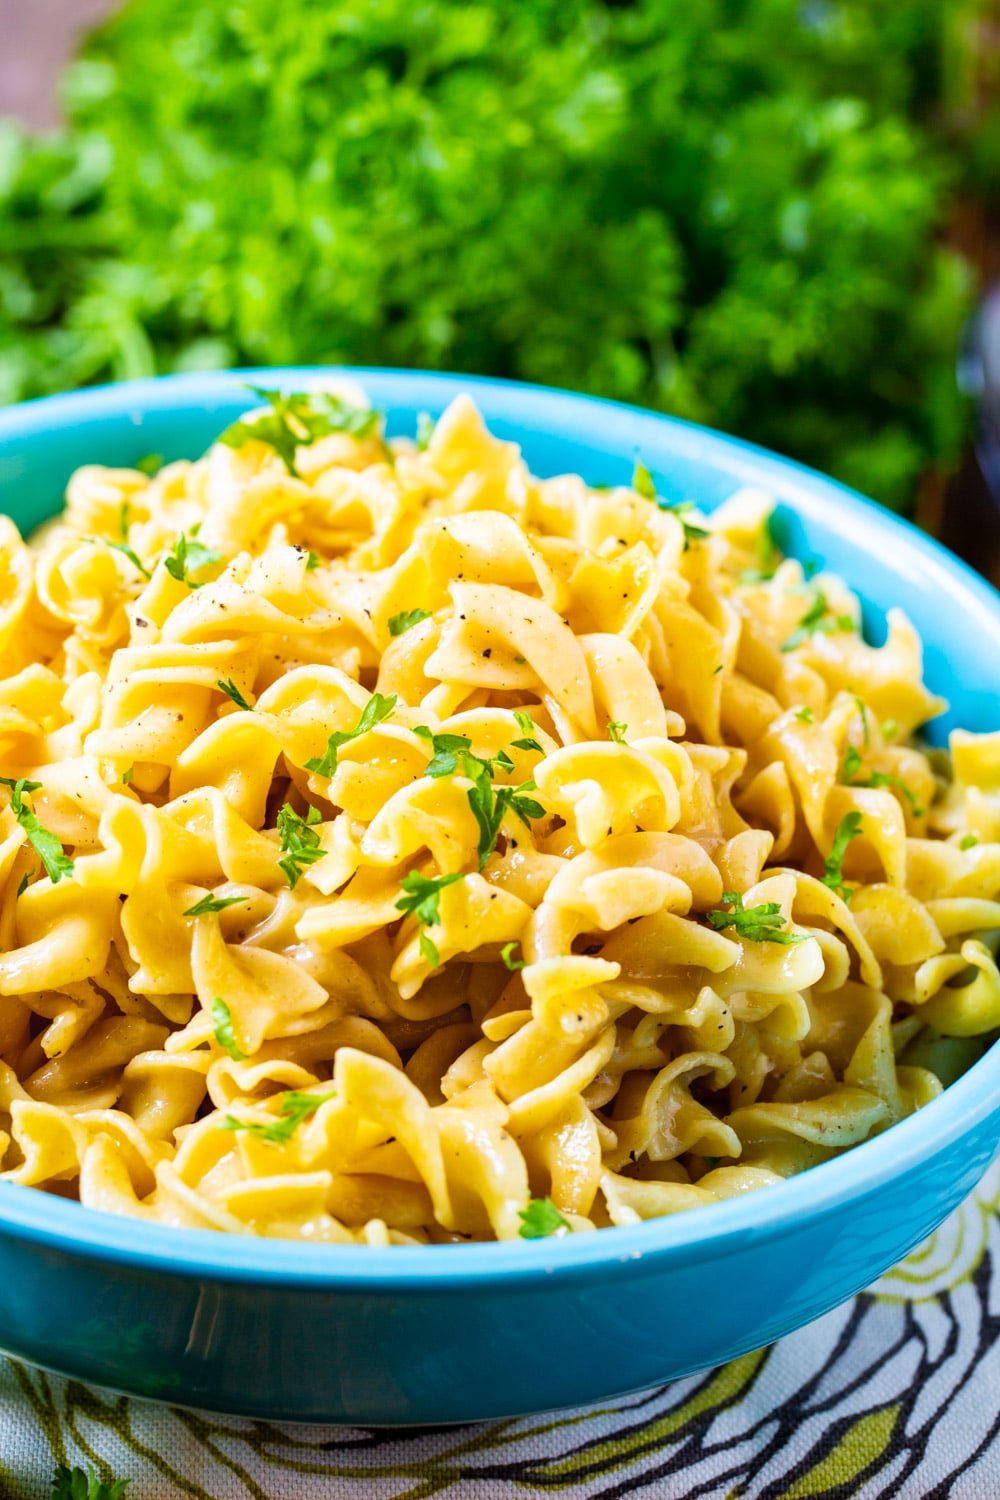 Buttered Noodles in a serving bowl.